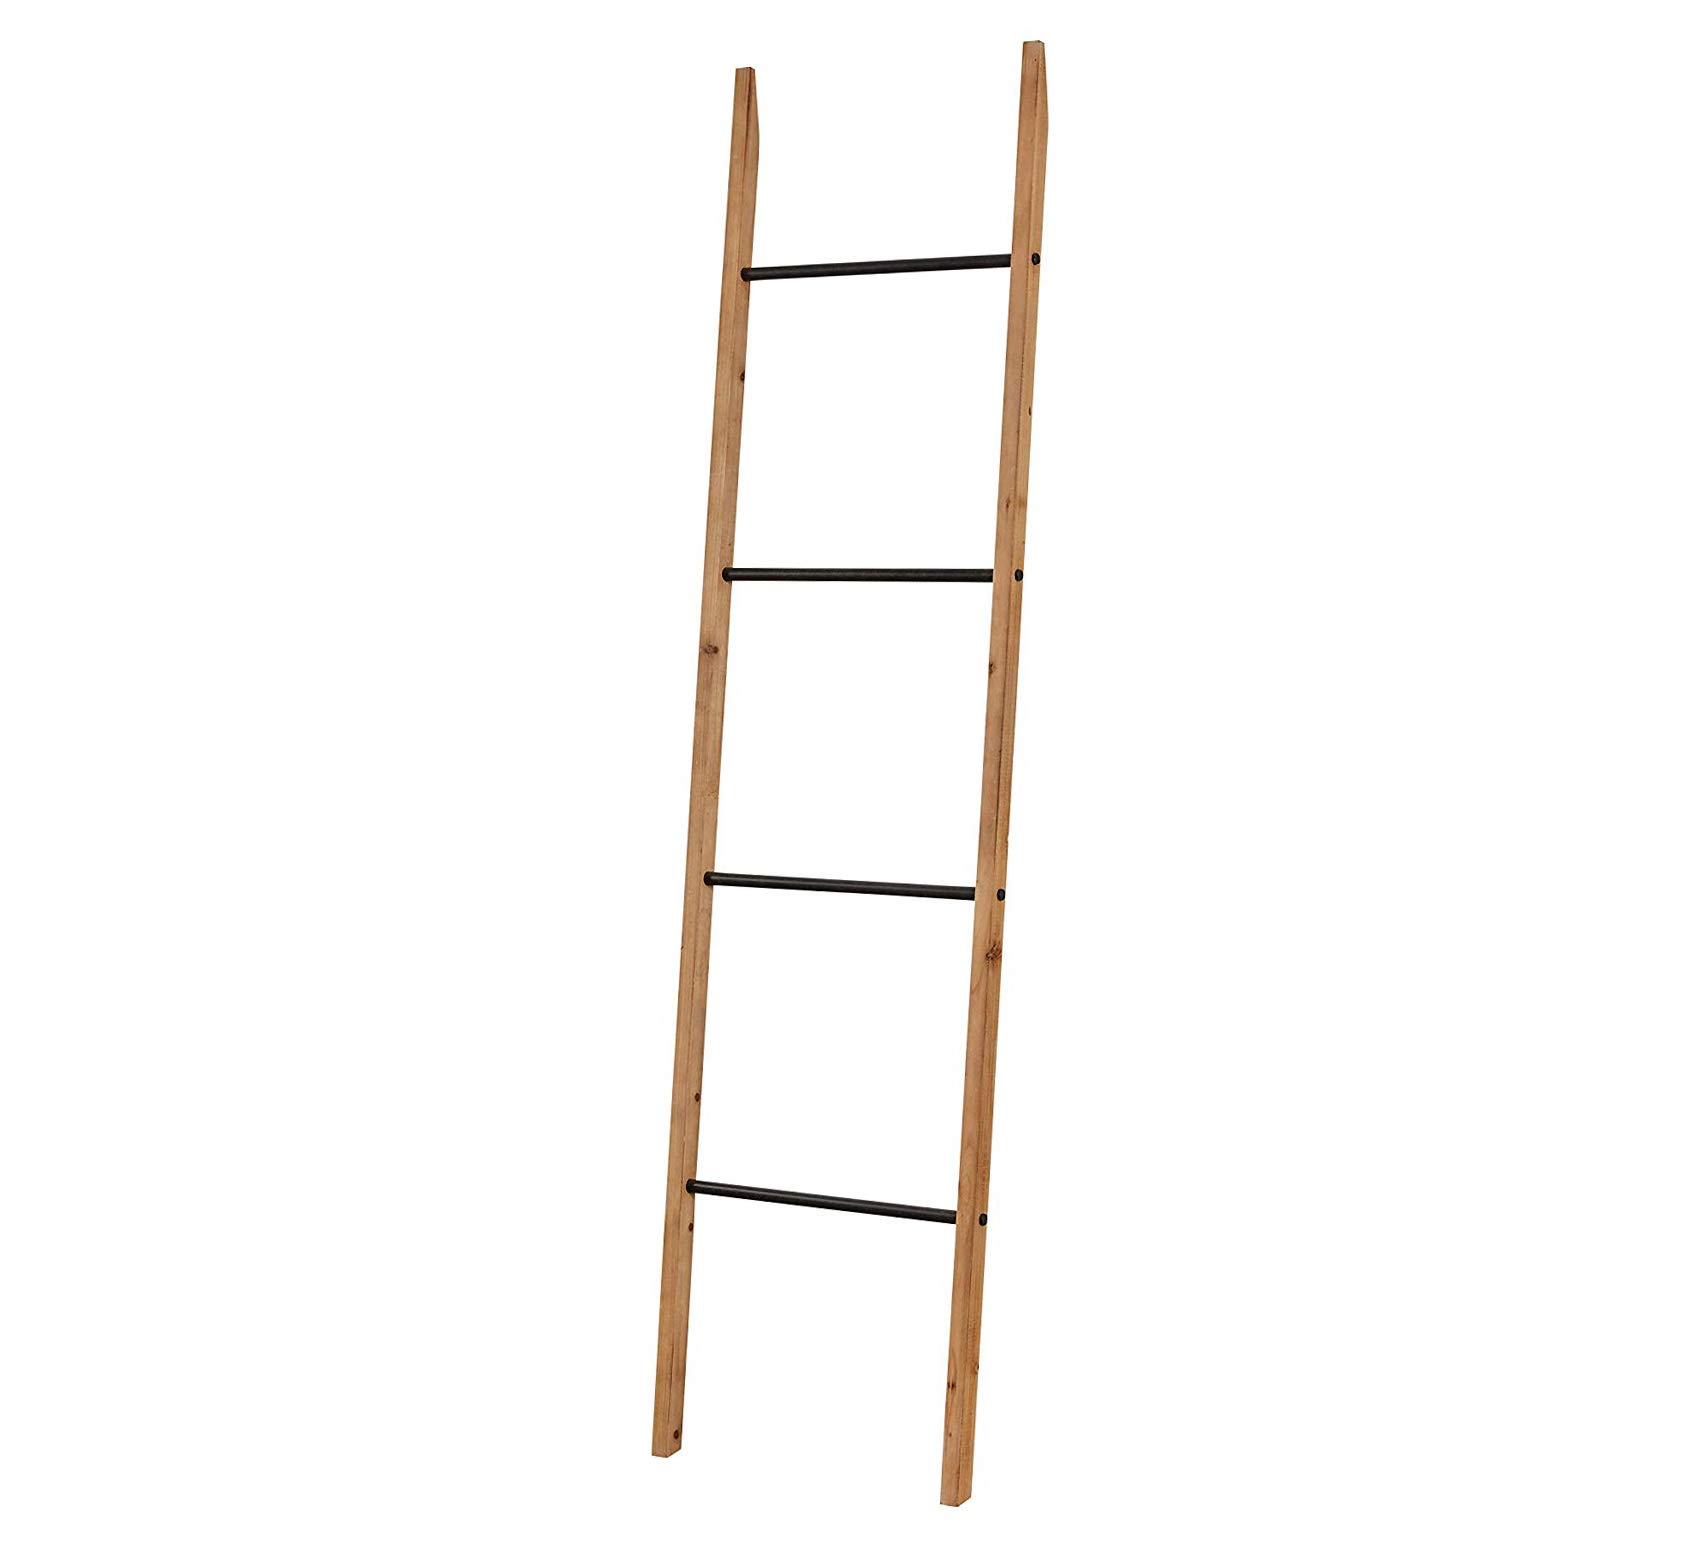 Fir Decorative Blanket Ladder with Iron Rungs - 71.65'' H, Black and Natural Wood Comfy Living Home Décor Furniture Heavy Duty